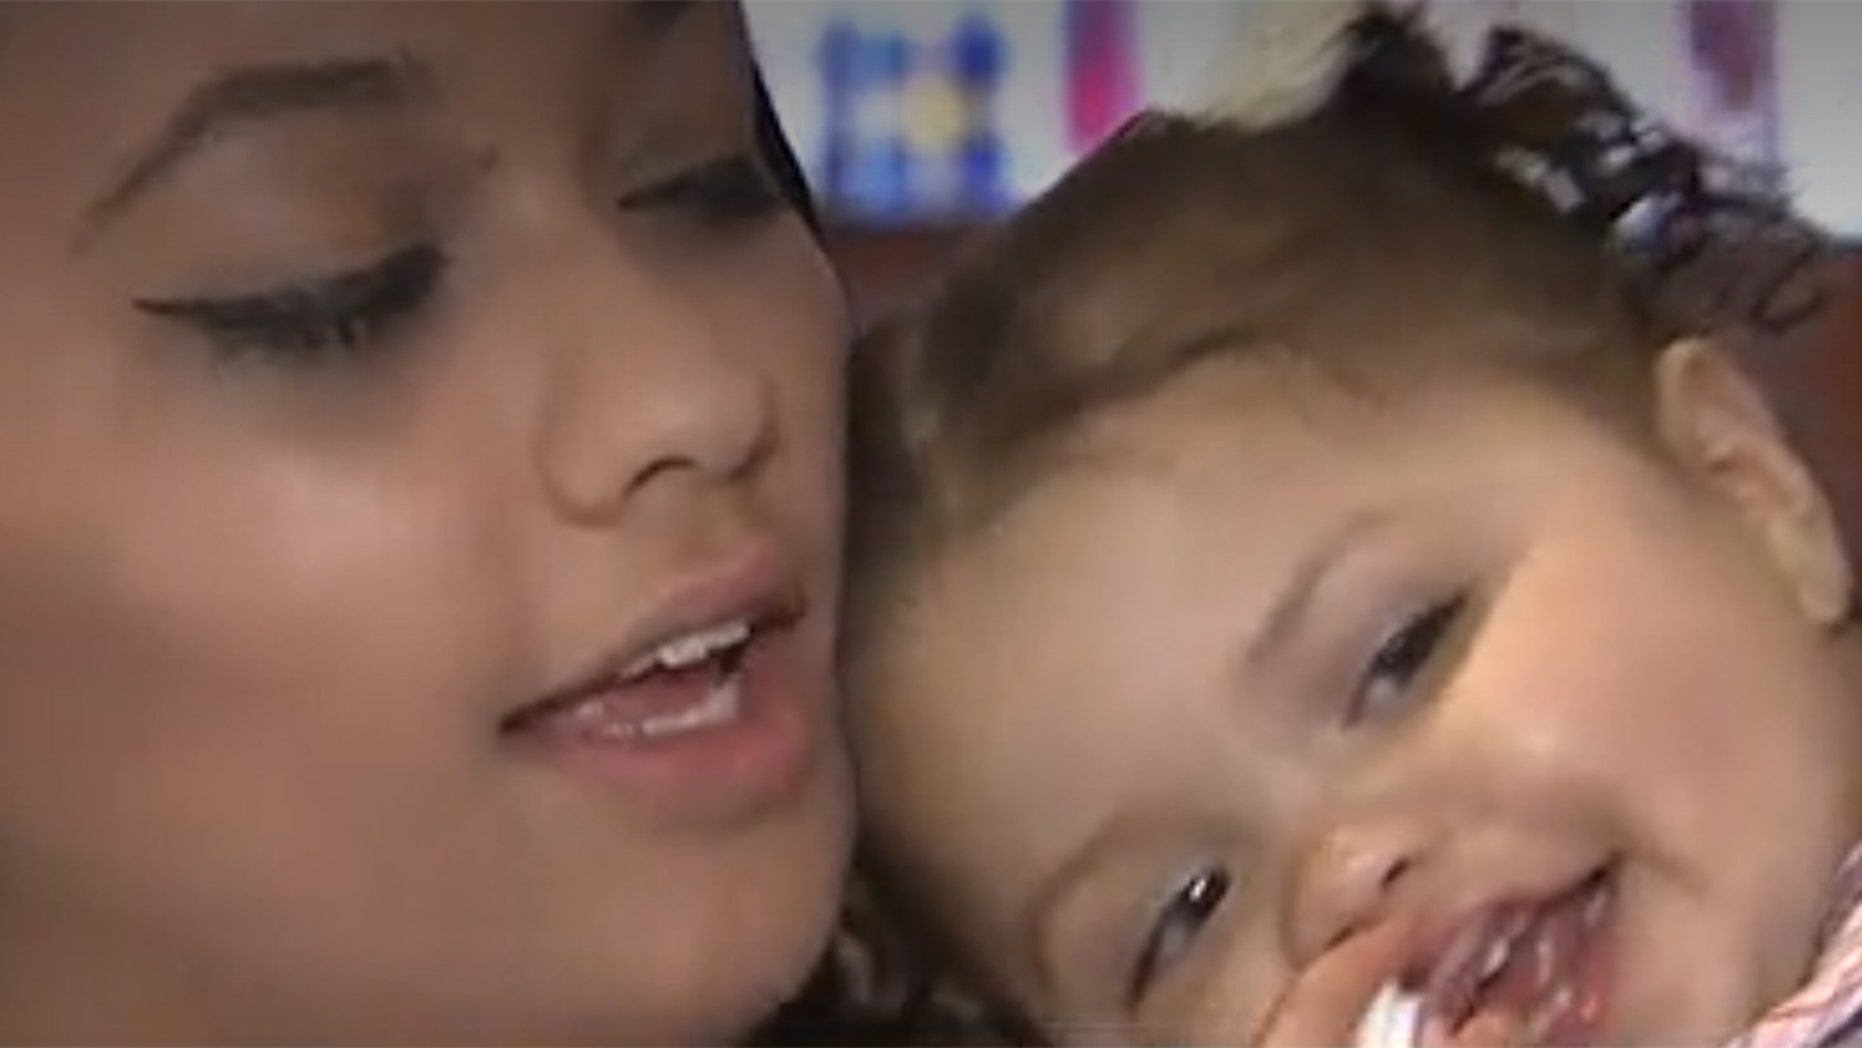 Avery Custodio, now nearly 18 months, was fitted with the world's tiniest mechanical heart valve.